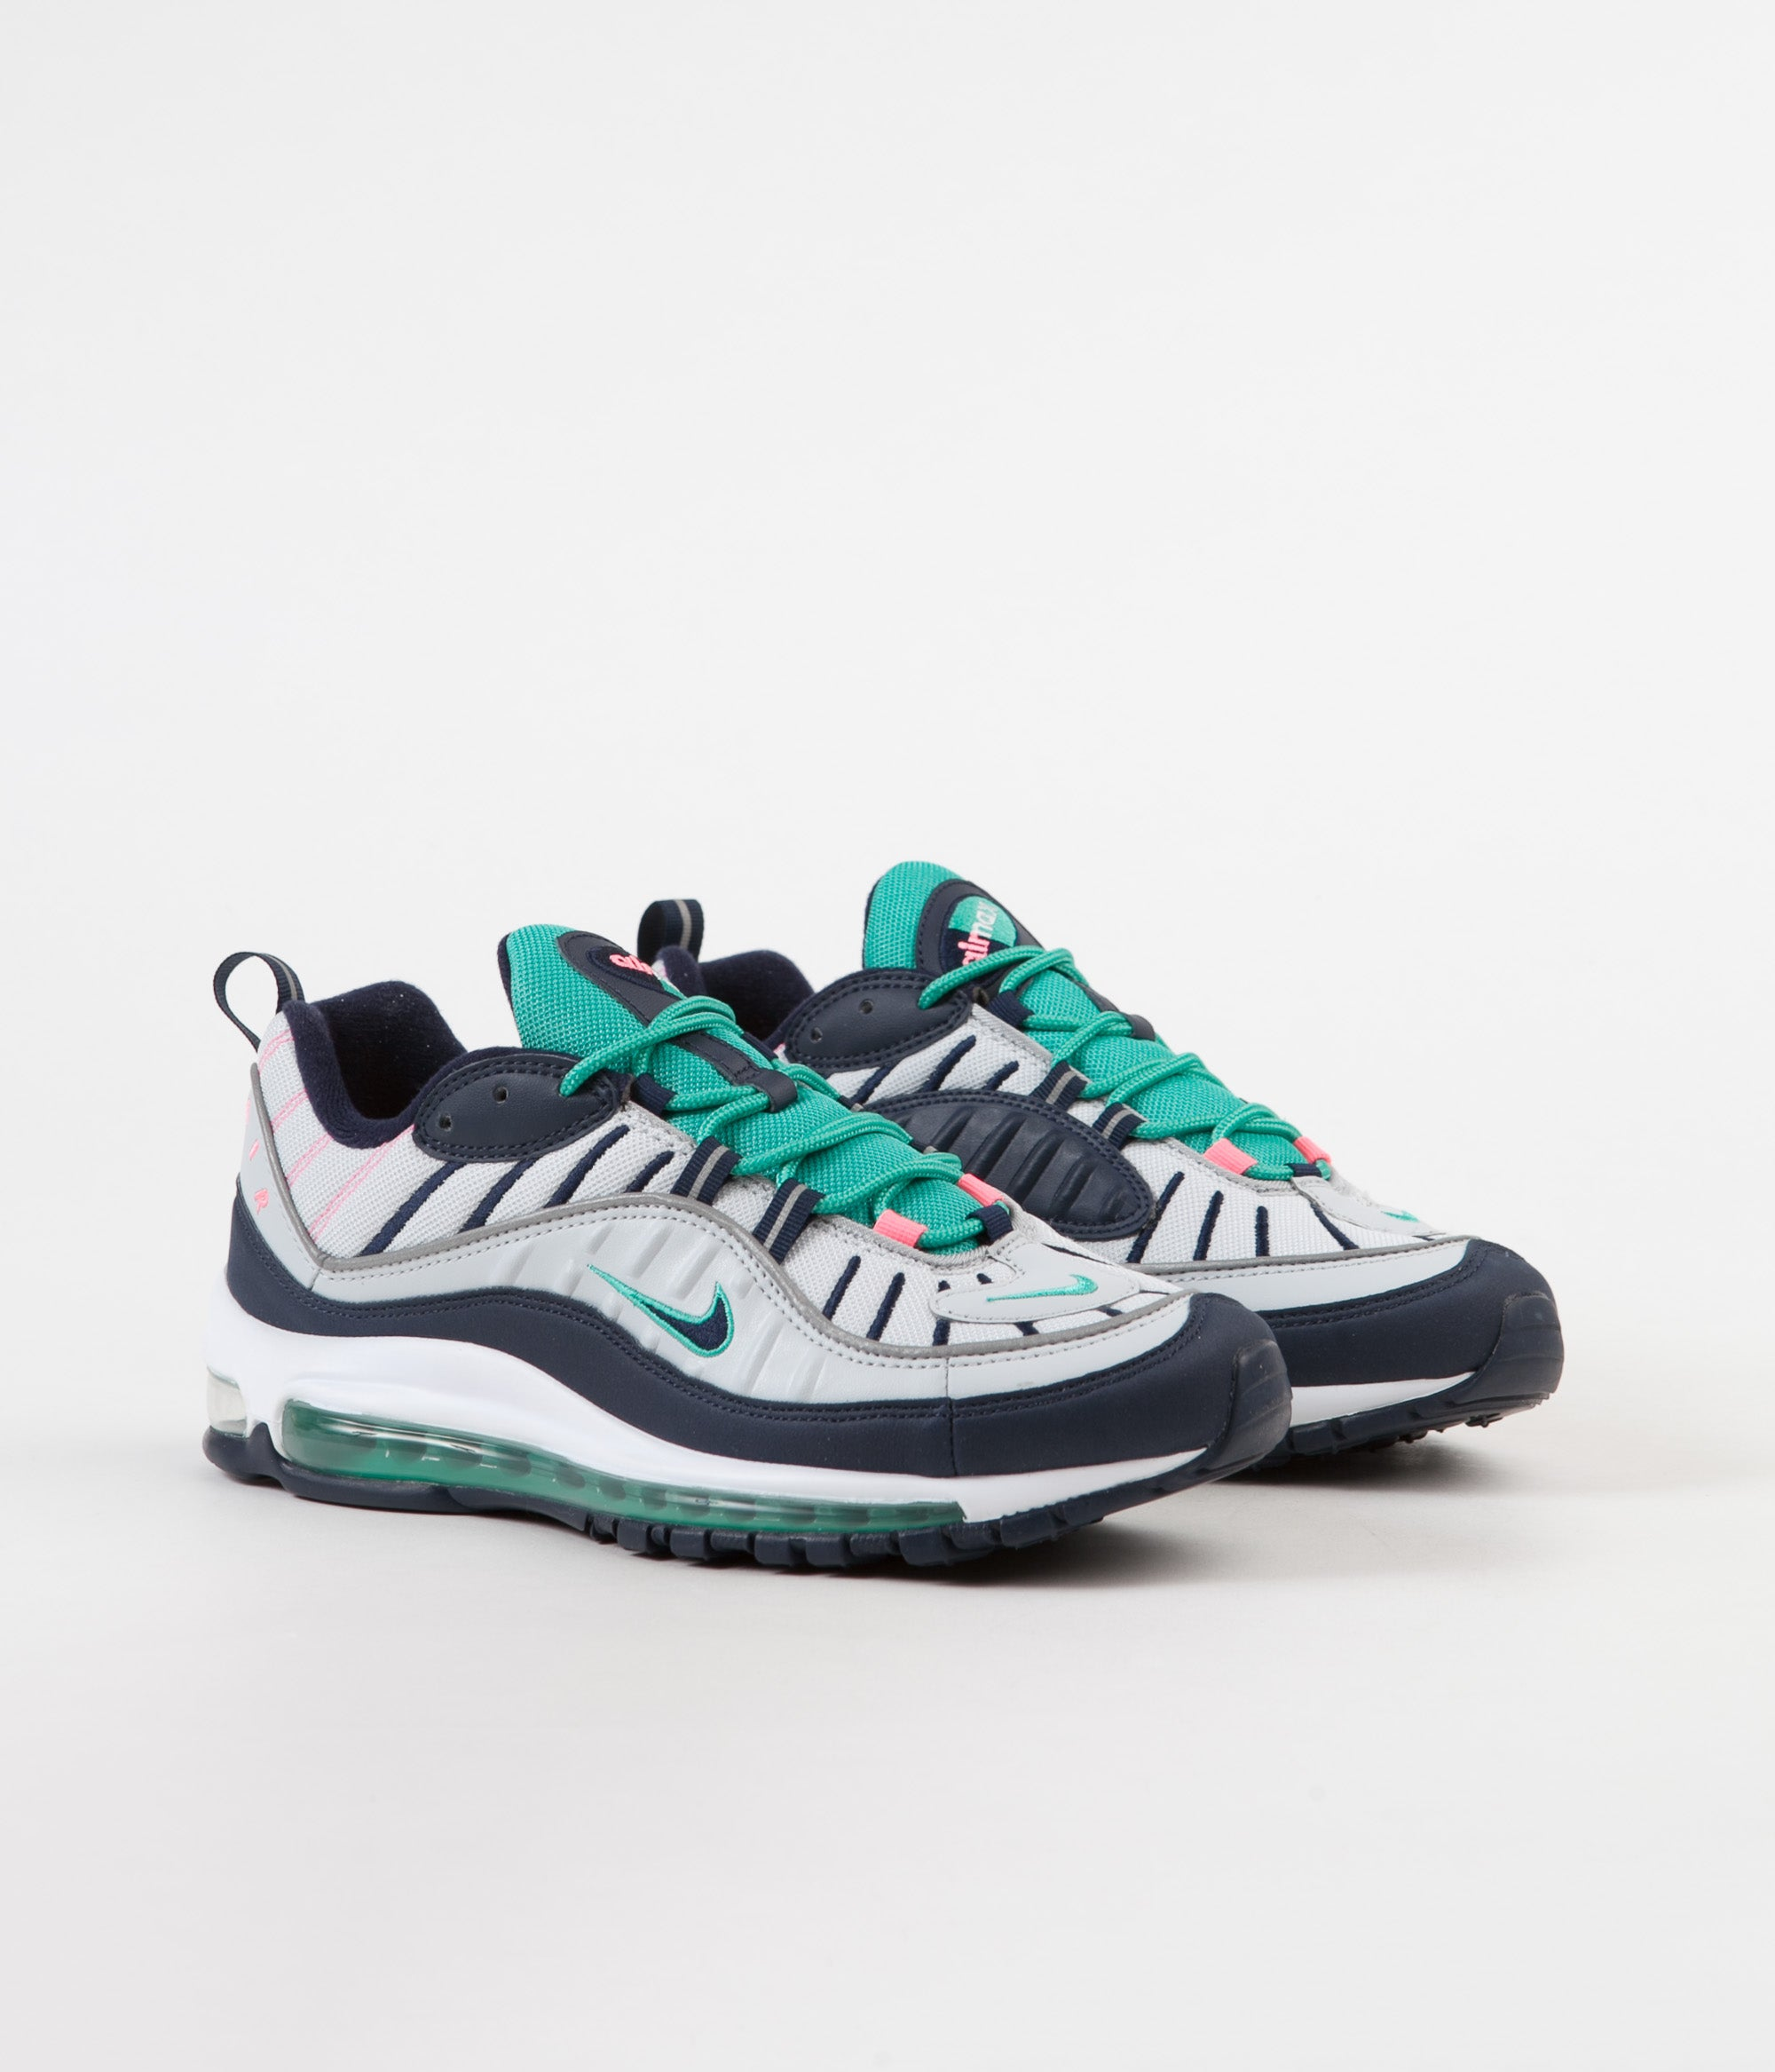 ababe5f200 ... Nike Air Max 98 Shoes - Pure Platinum / Obsidian - Kinetic Green ...